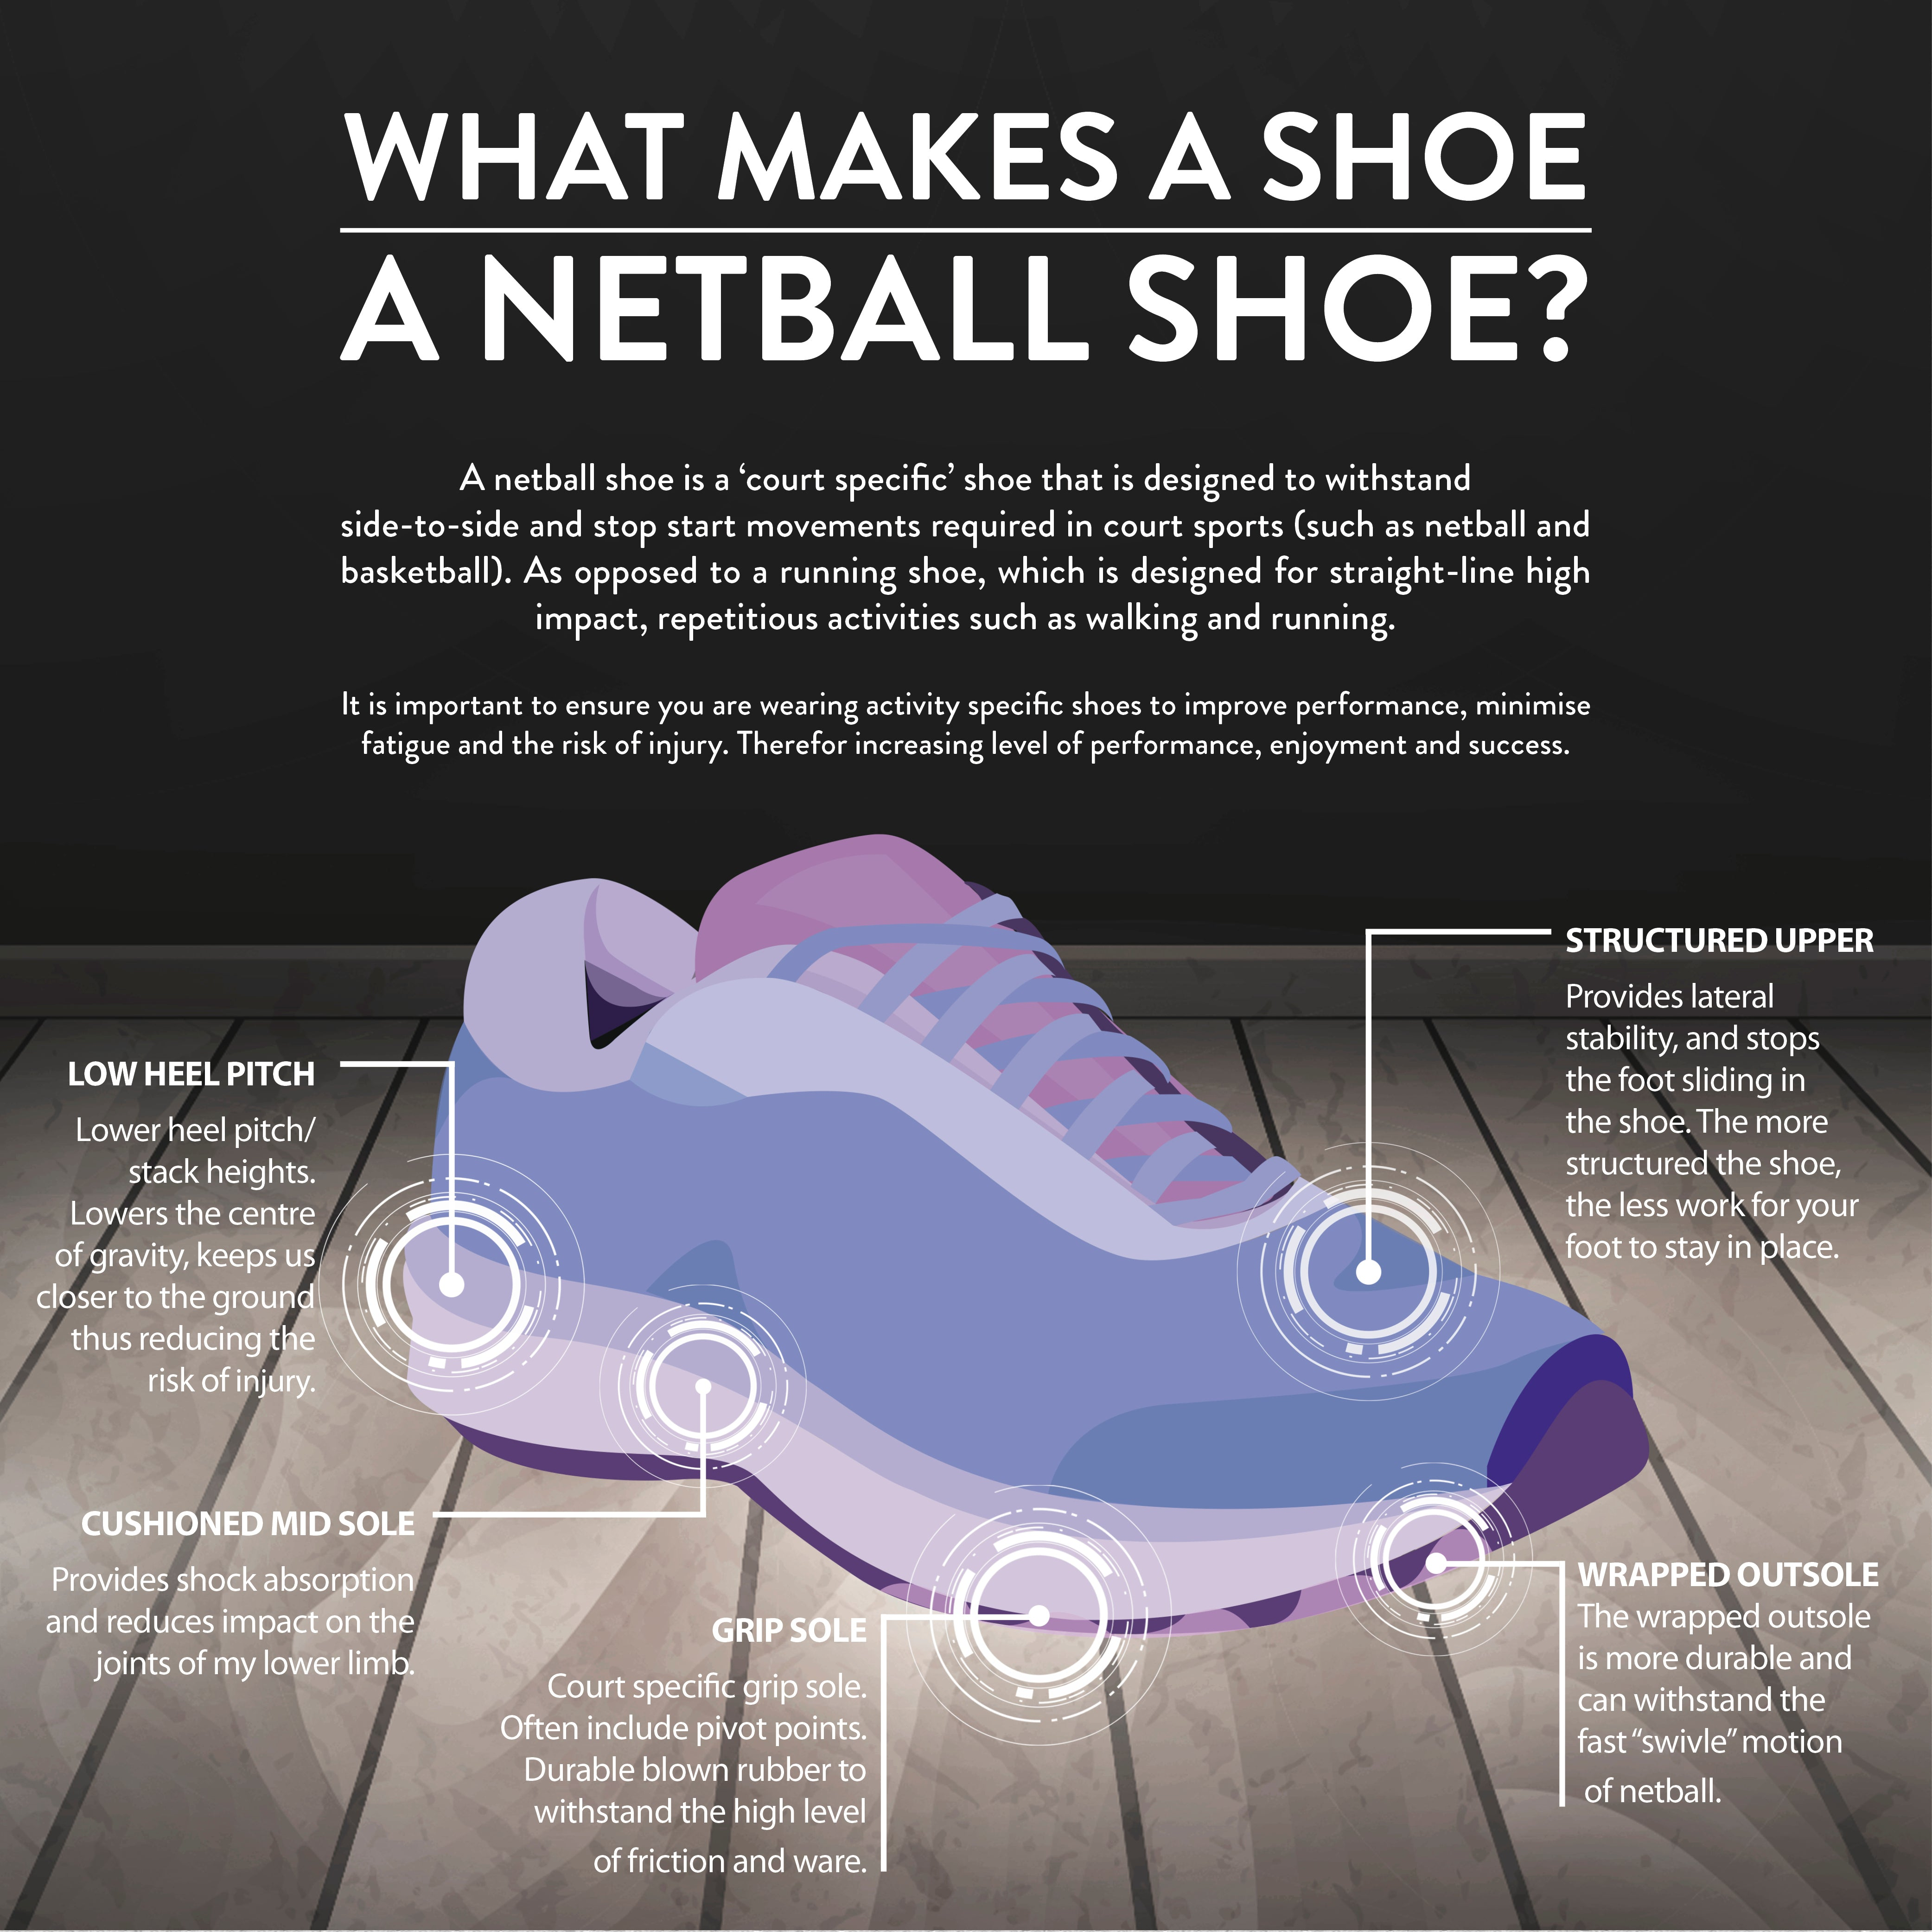 What makes a shoe a Netball Shoe? How